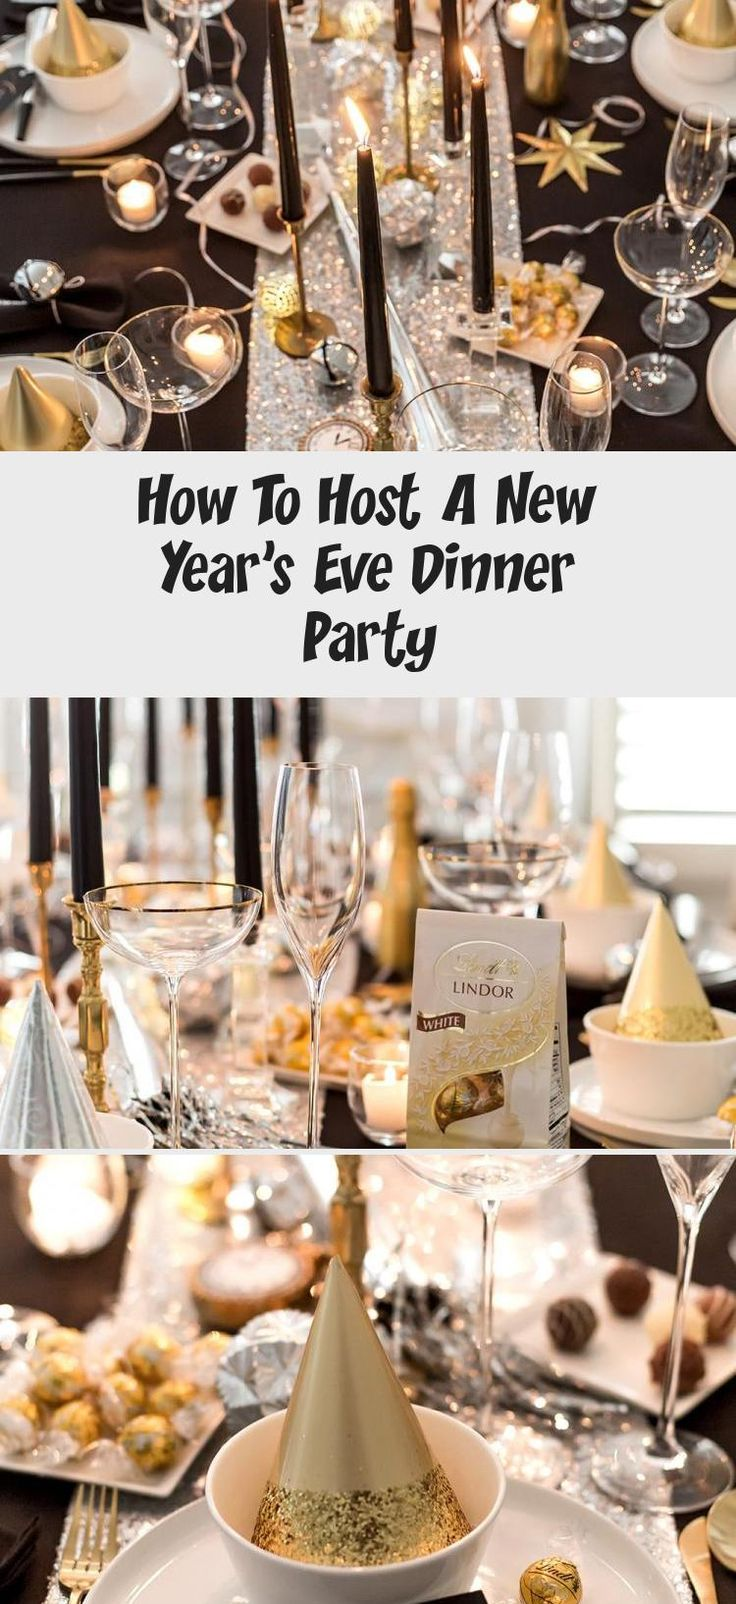 How To Host A New Year's Eve Dinner Party in 2020 | New ...